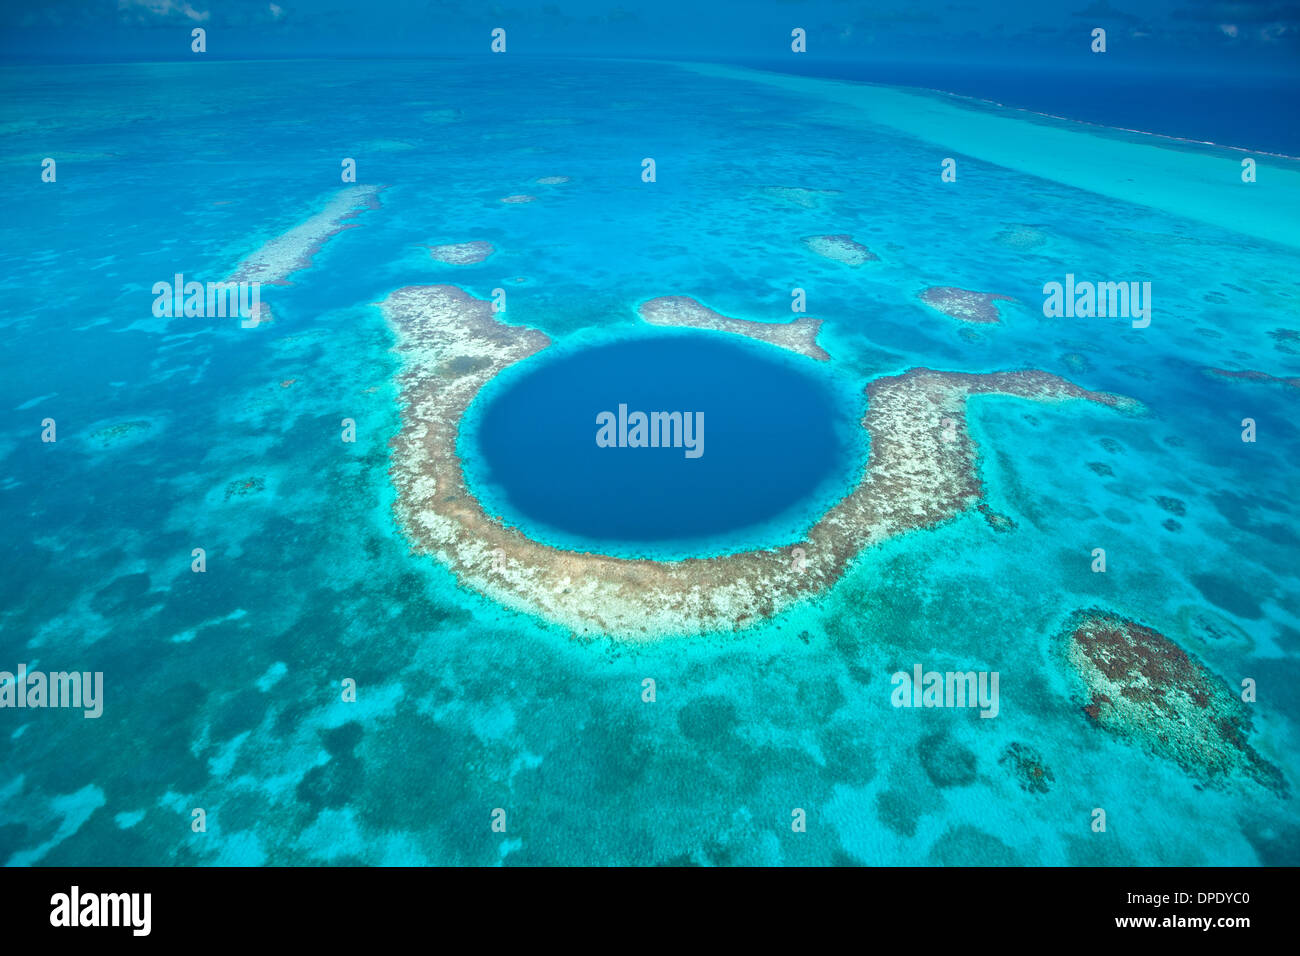 The Blue Hole Blue Hole National Monument, Belize Caribbean Sea Meso-American Reef Lighthouse Reef Atoll 400 foot - Stock Image